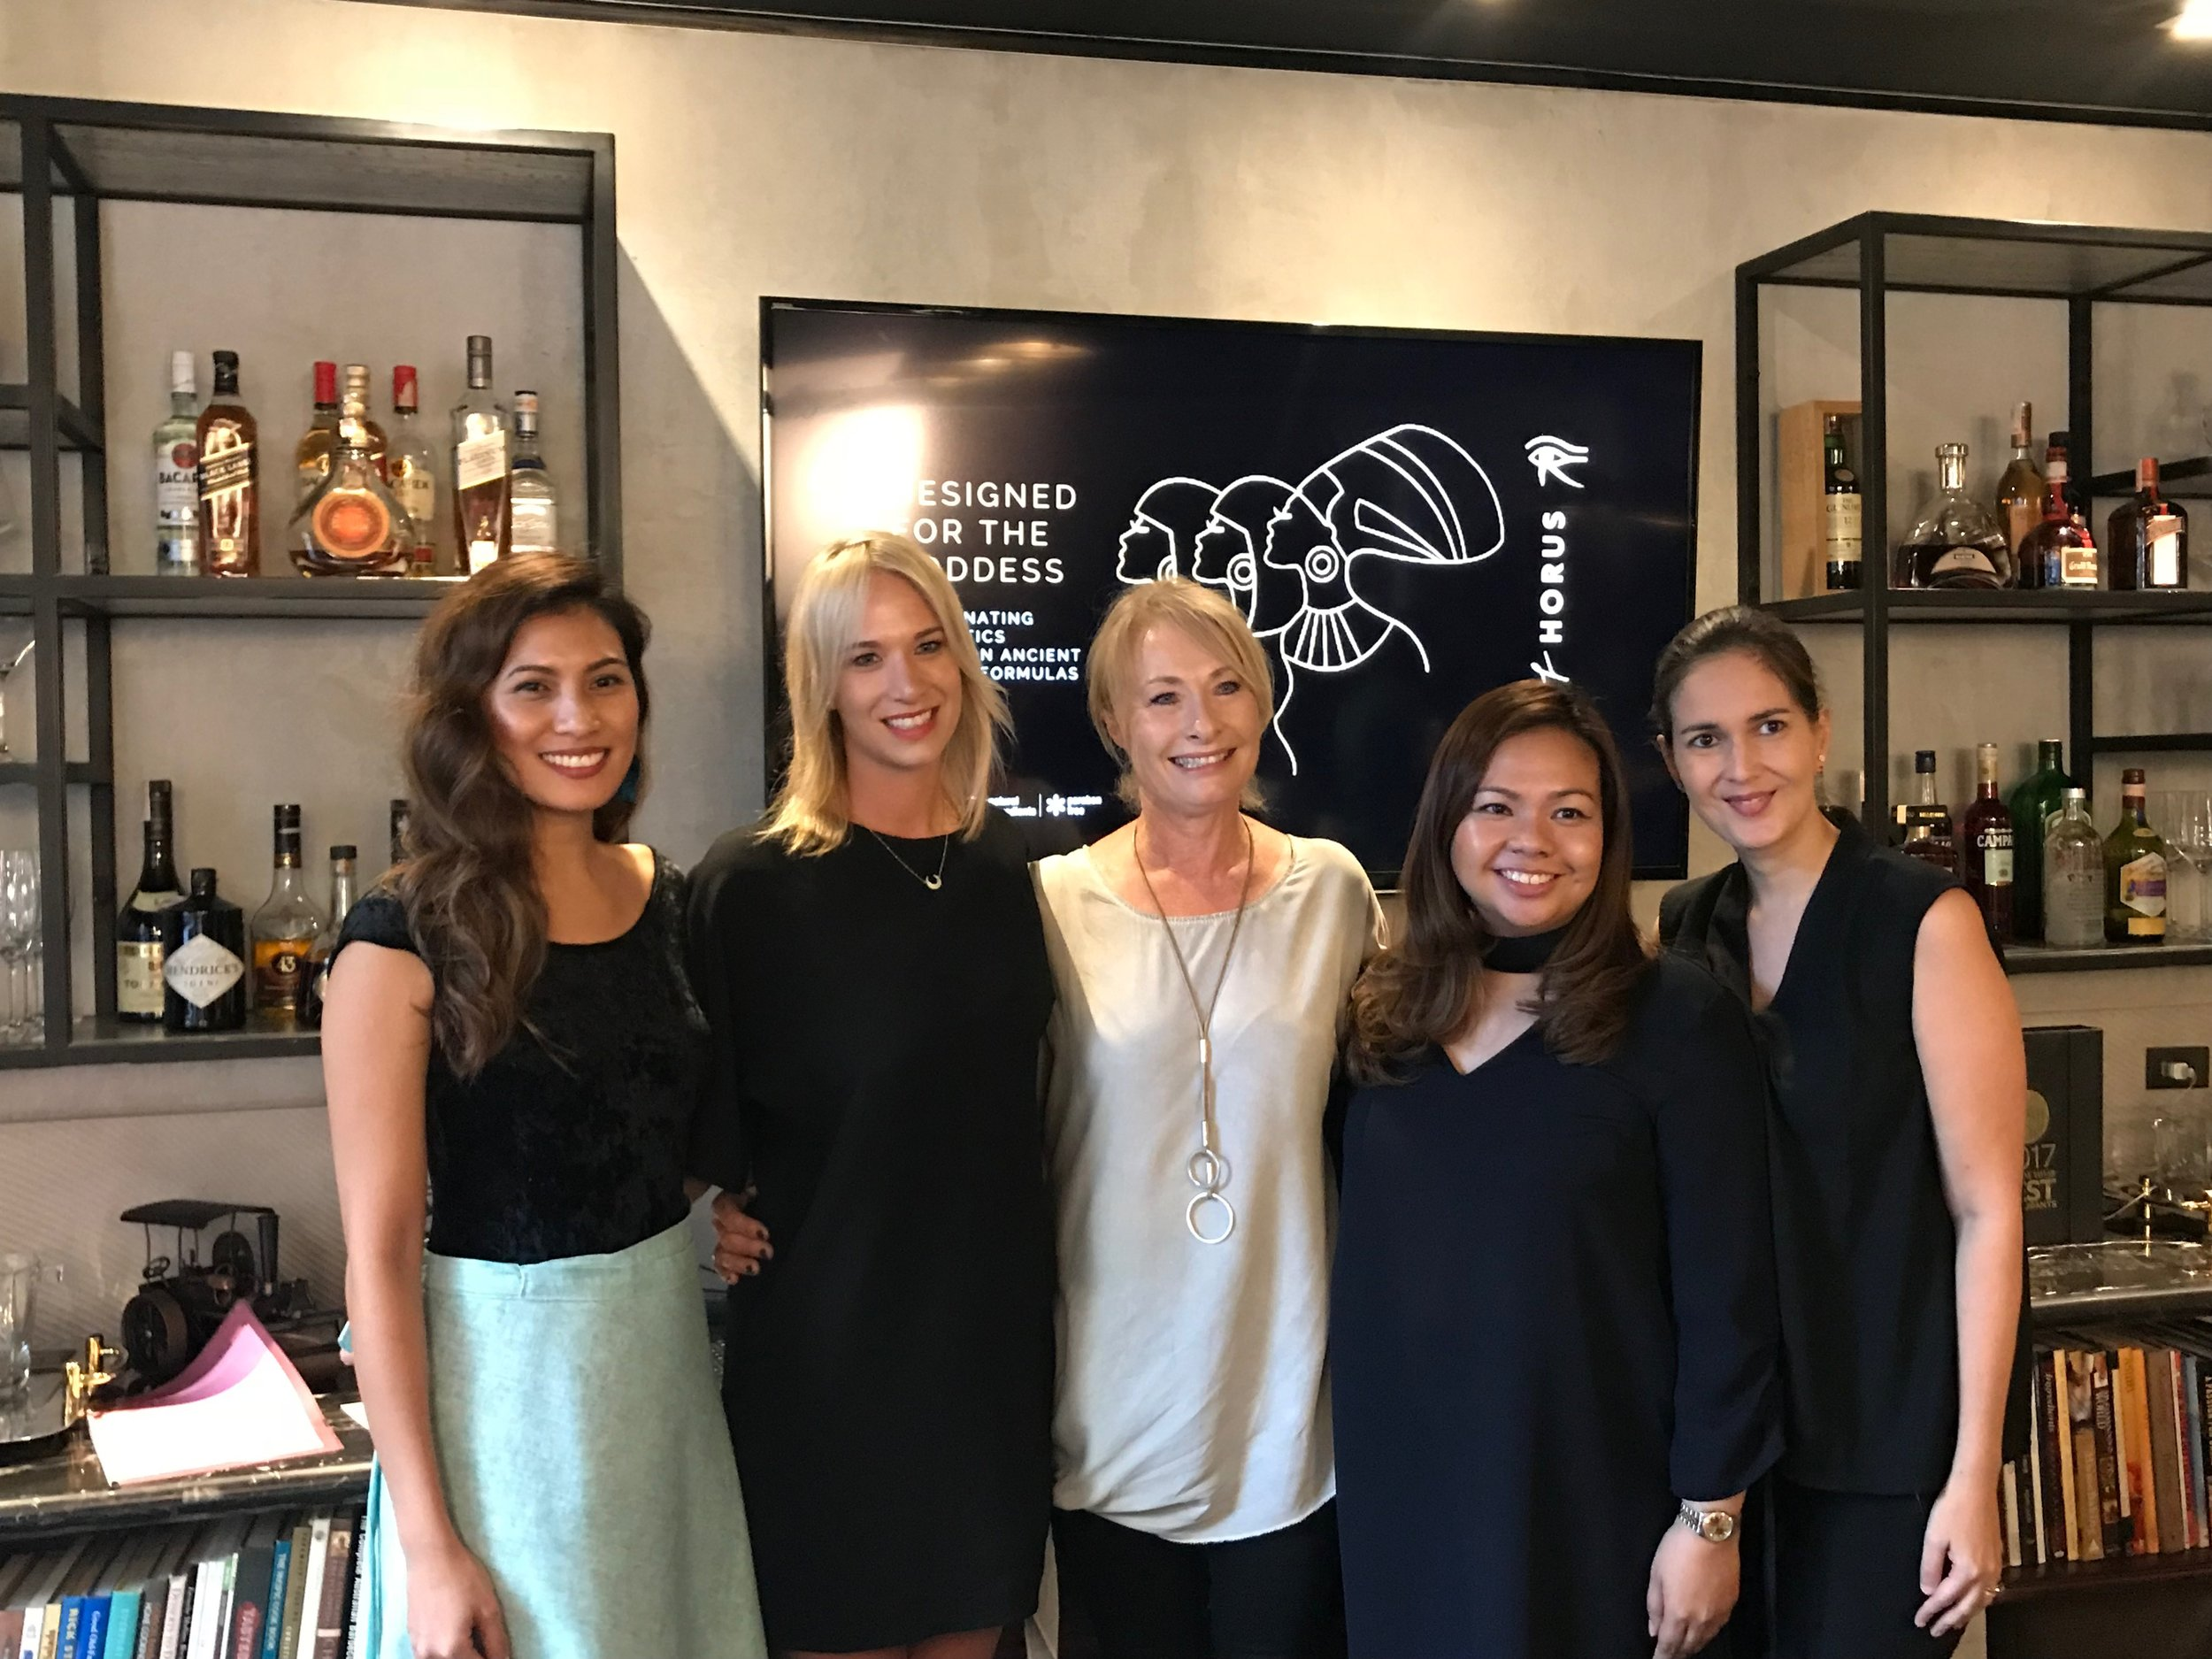 Glamourbox with the Eye of Horus Cosmetics founders (L-R:   Lia Ramos, Glamourbox CEO; Holly Spierings and Heather Spierings of Eye of Horus, Fe Olivia Mir, Glamourbox CMO, and Marie-Julie Ona Glamourbox CO.